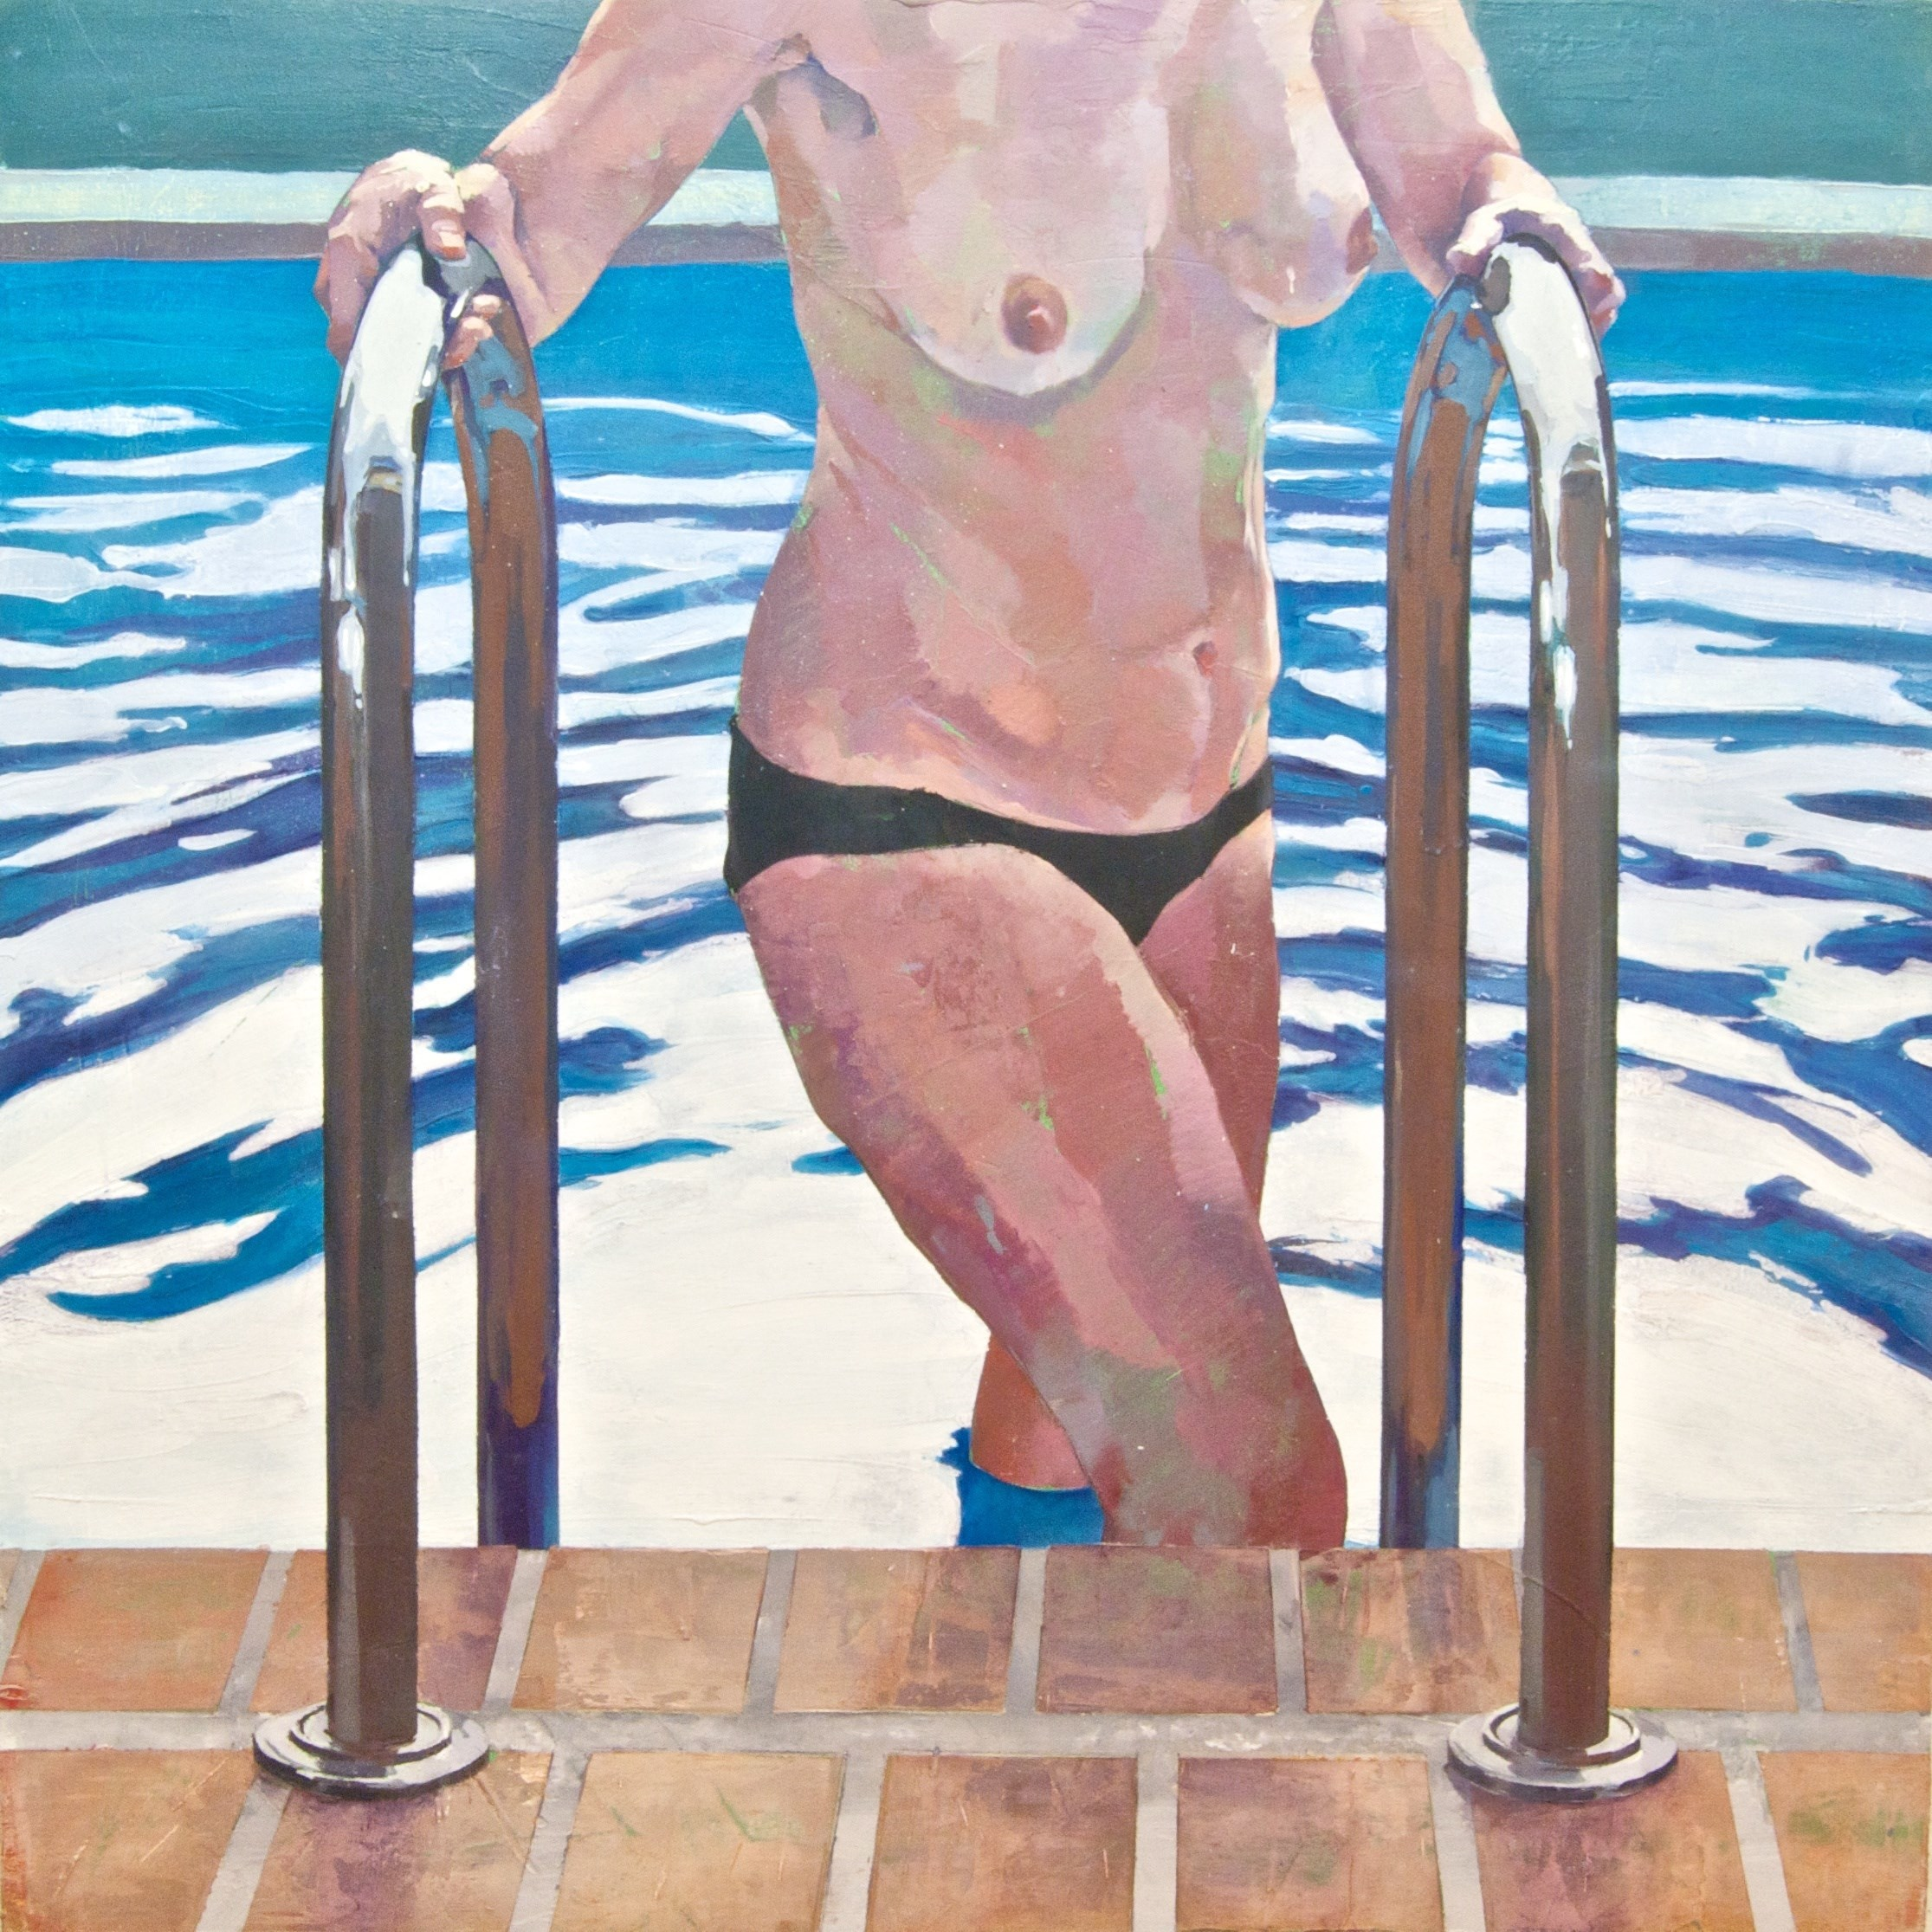 Escalera de piscina a contraluz., original Body Oil Painting by Alejandro Casanova